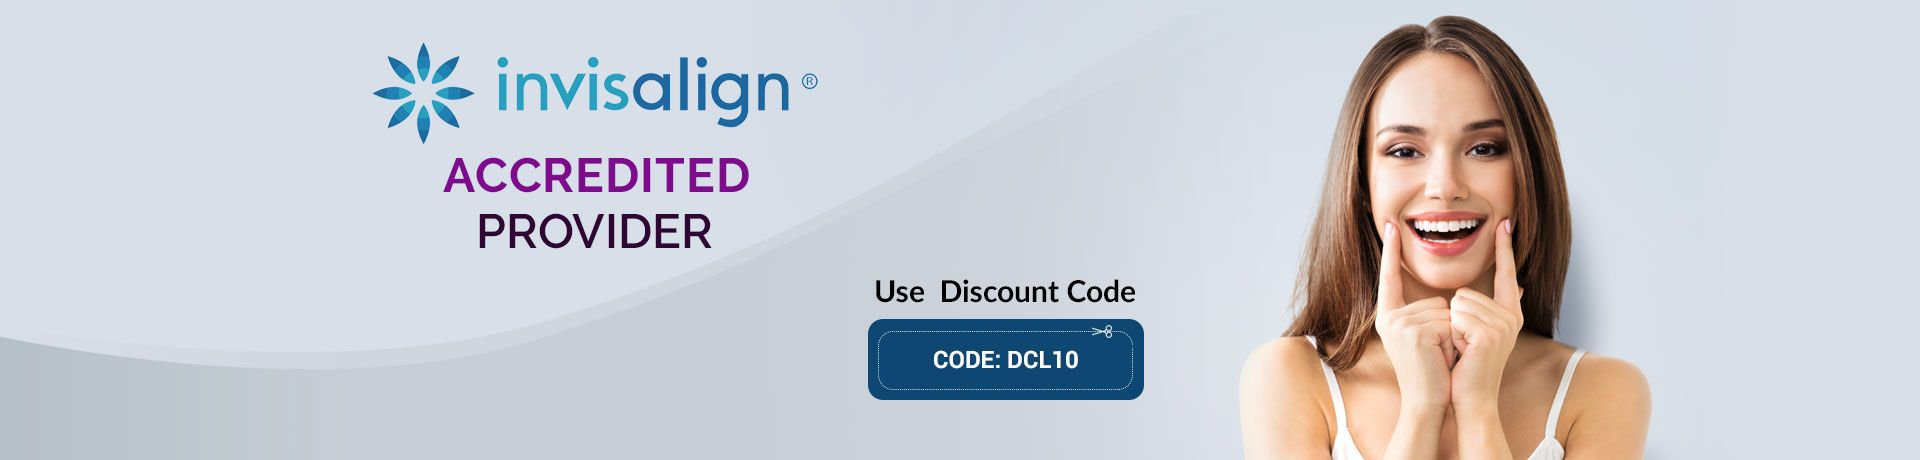 Amazing discounts and offers on Invisalign in London at